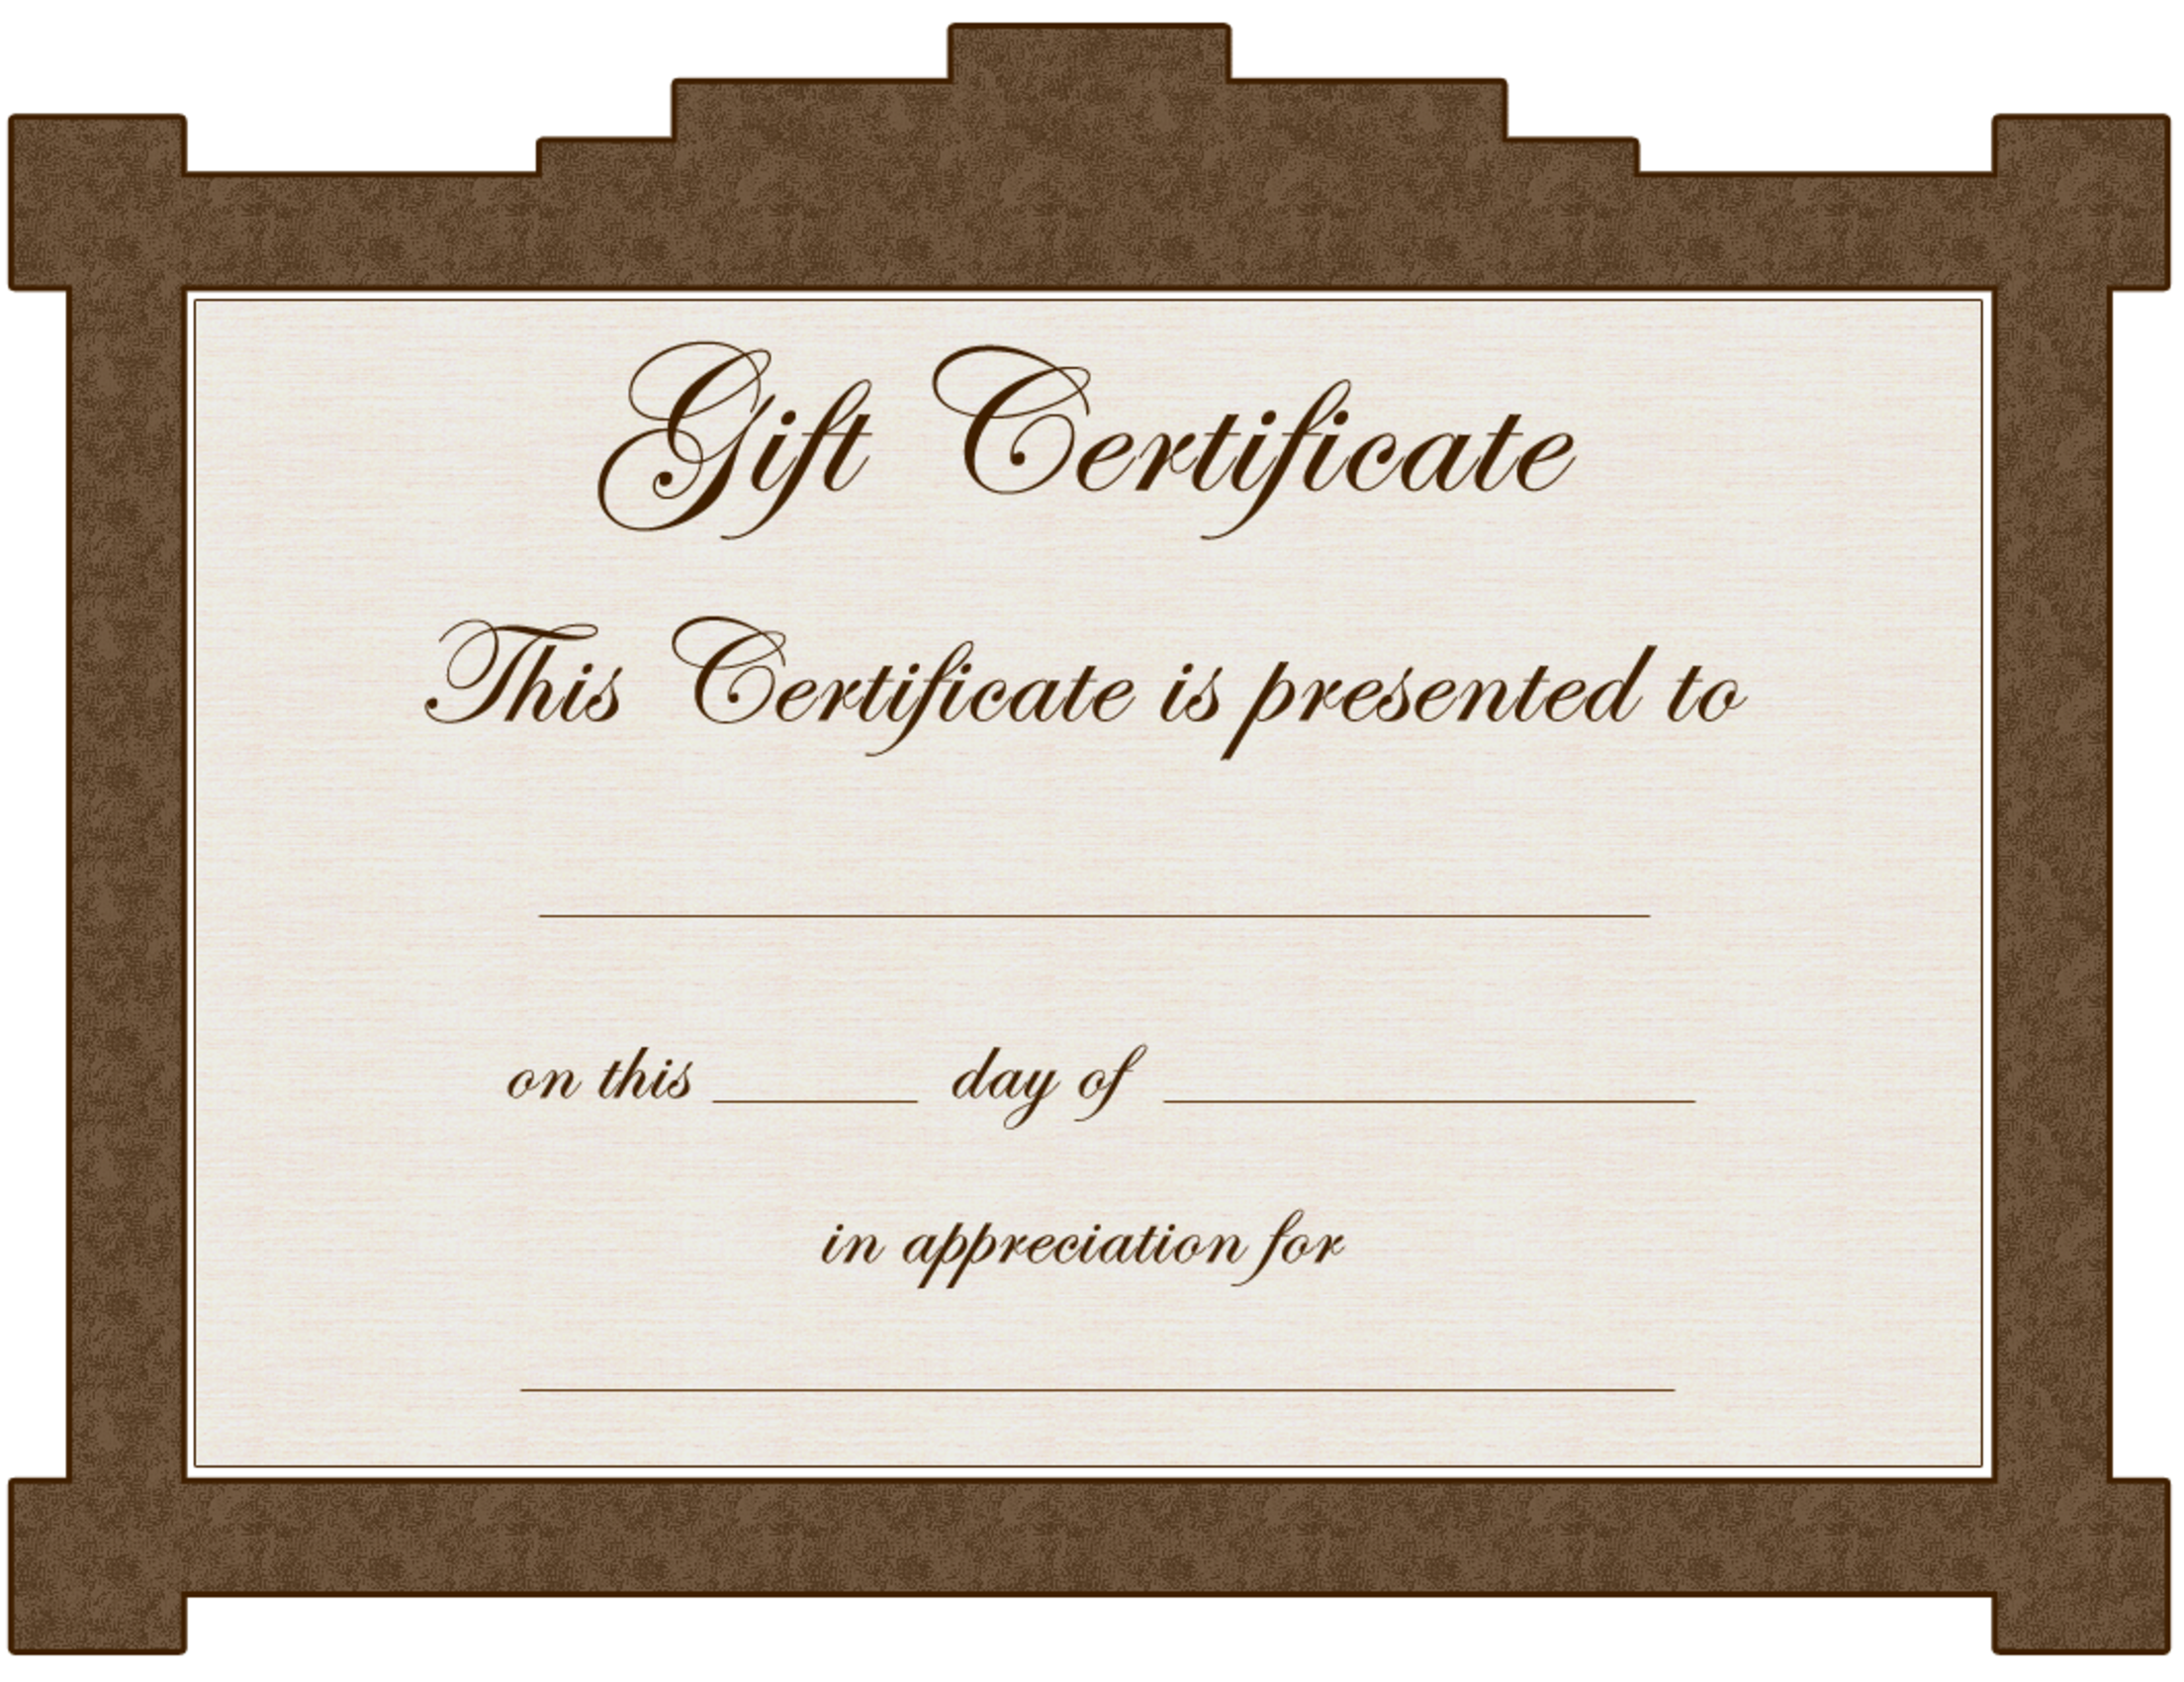 Tattoo gift certificate template for Avon gift certificates templates free